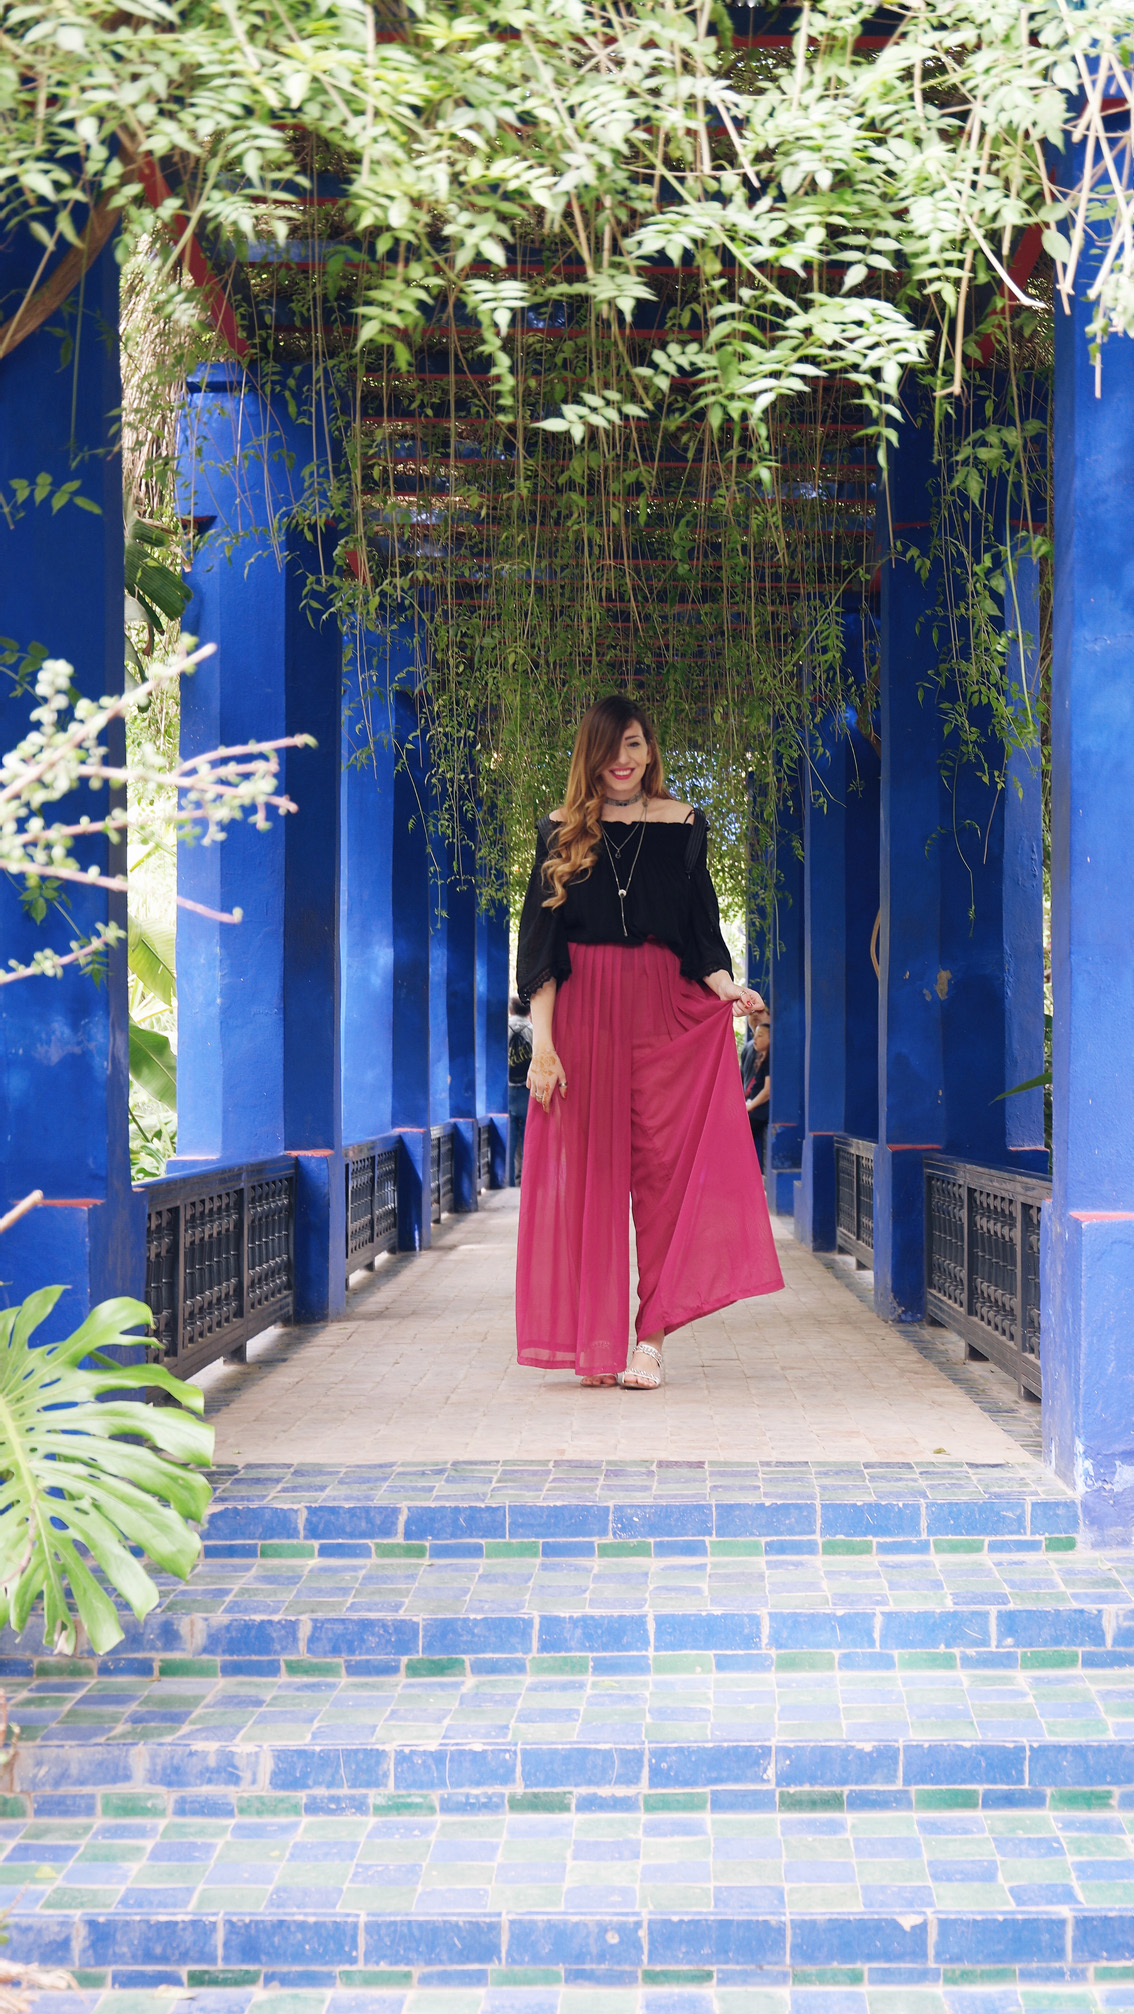 12 Jardin Majorelle - a magical place in Marrakech.